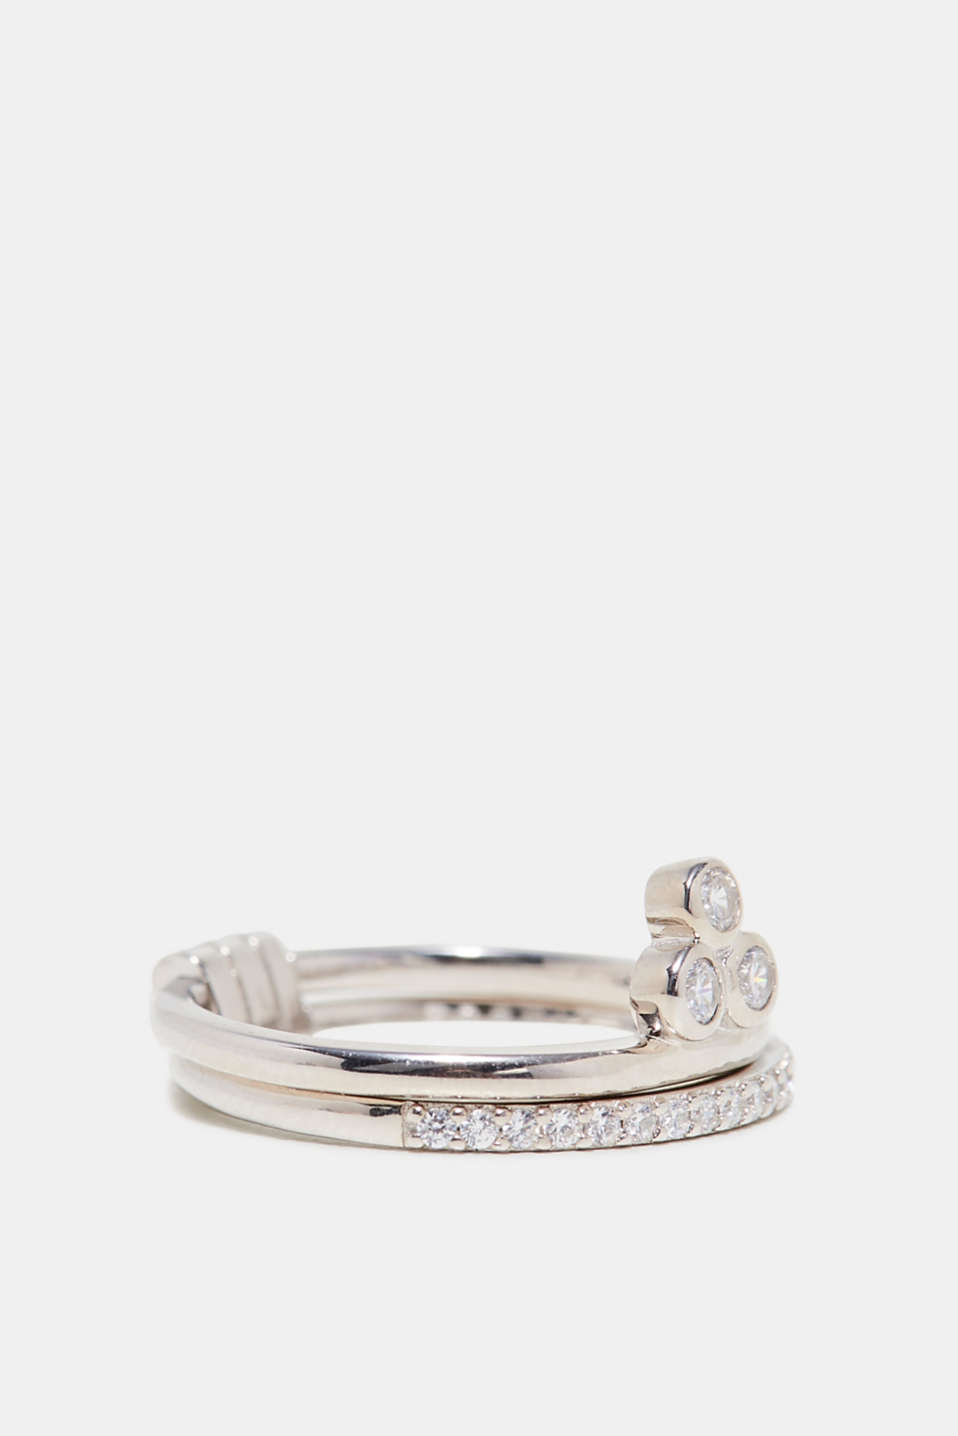 Esprit - Twin ring with a zirconia stone, sterling silver